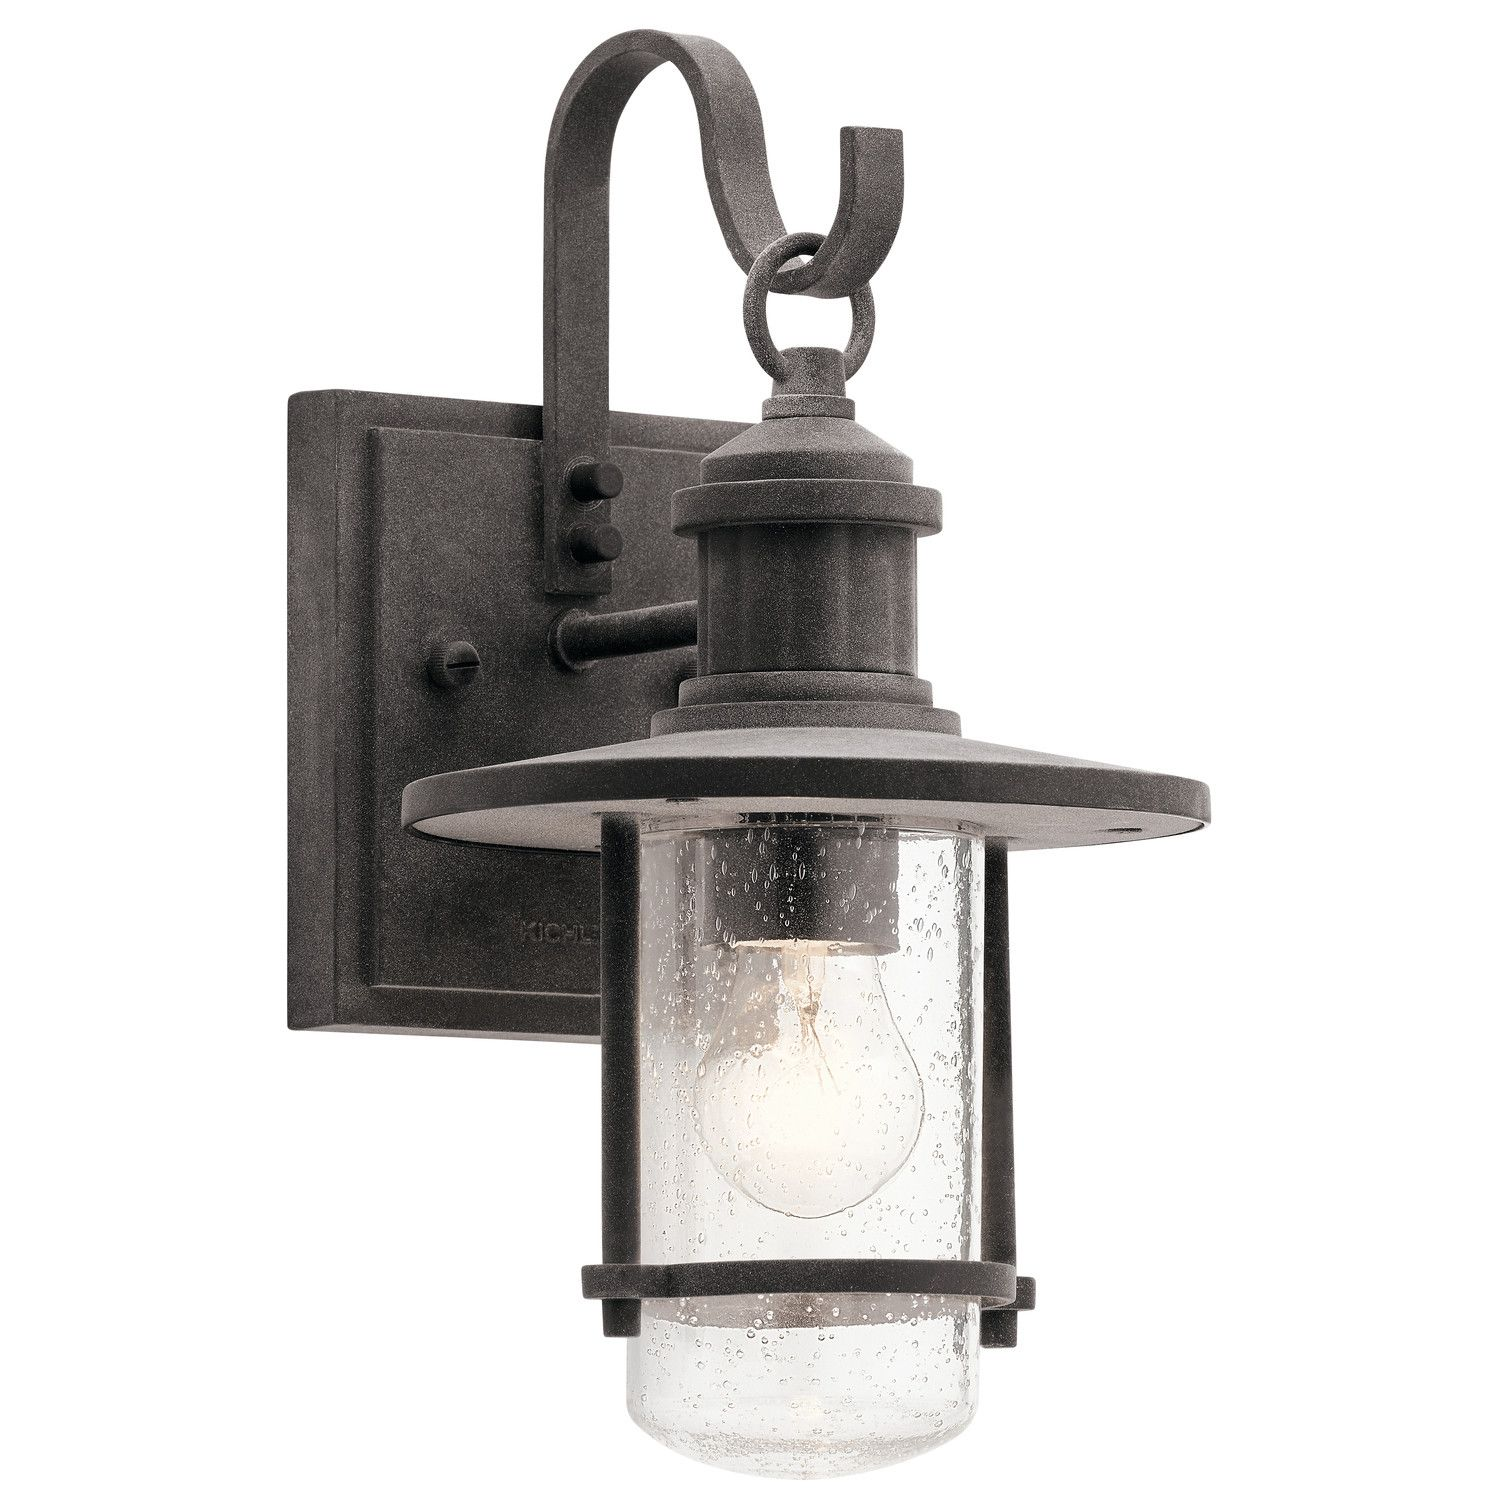 Colombier 1 light outdoor wall lantern outdoor wall lantern colombier 1 light outdoor wall lantern arubaitofo Image collections